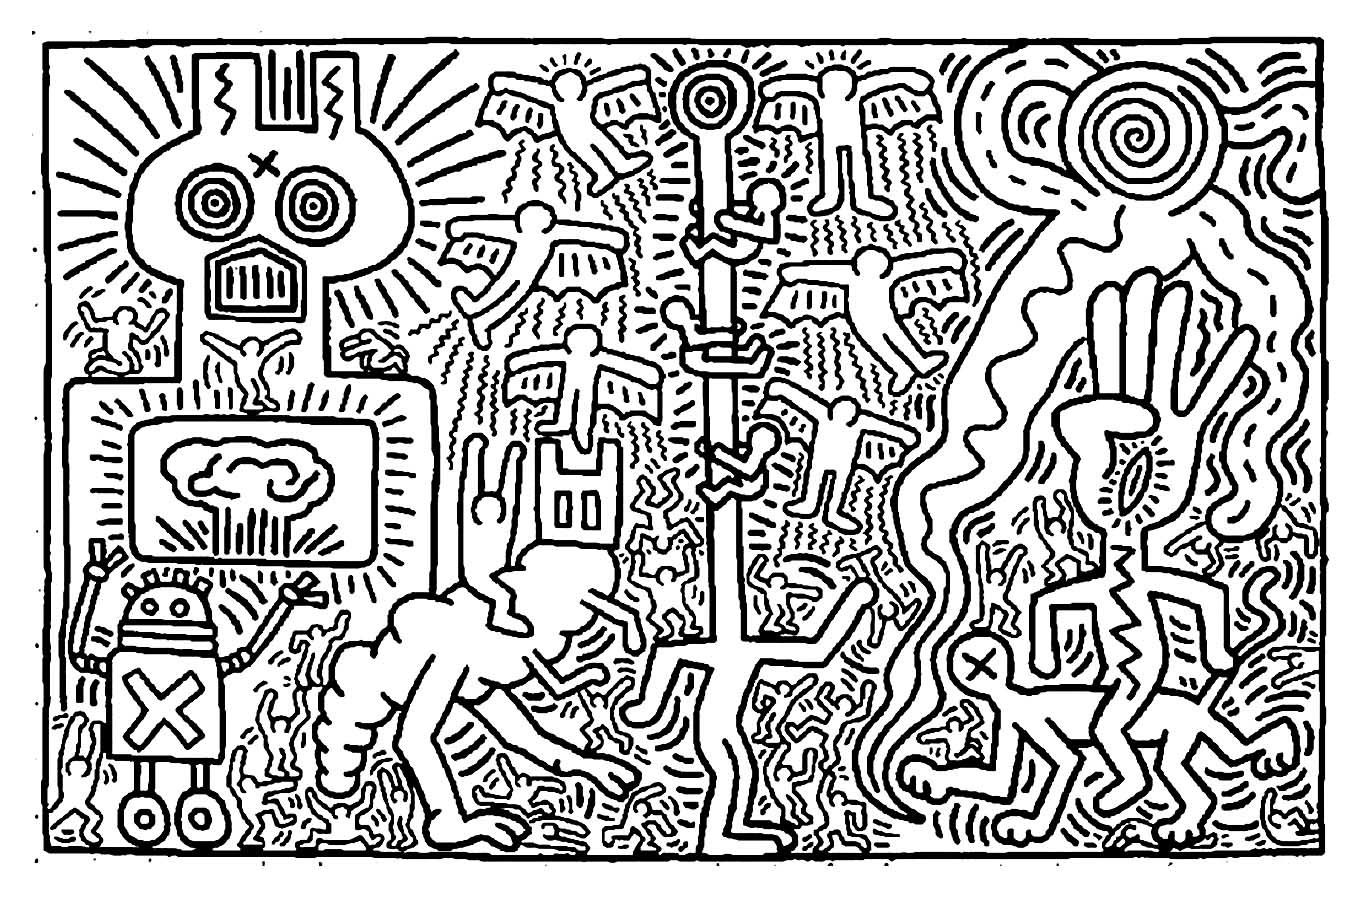 pop art coloring pages pin by dee davis on great artist pop art coloring pages art coloring pop pages